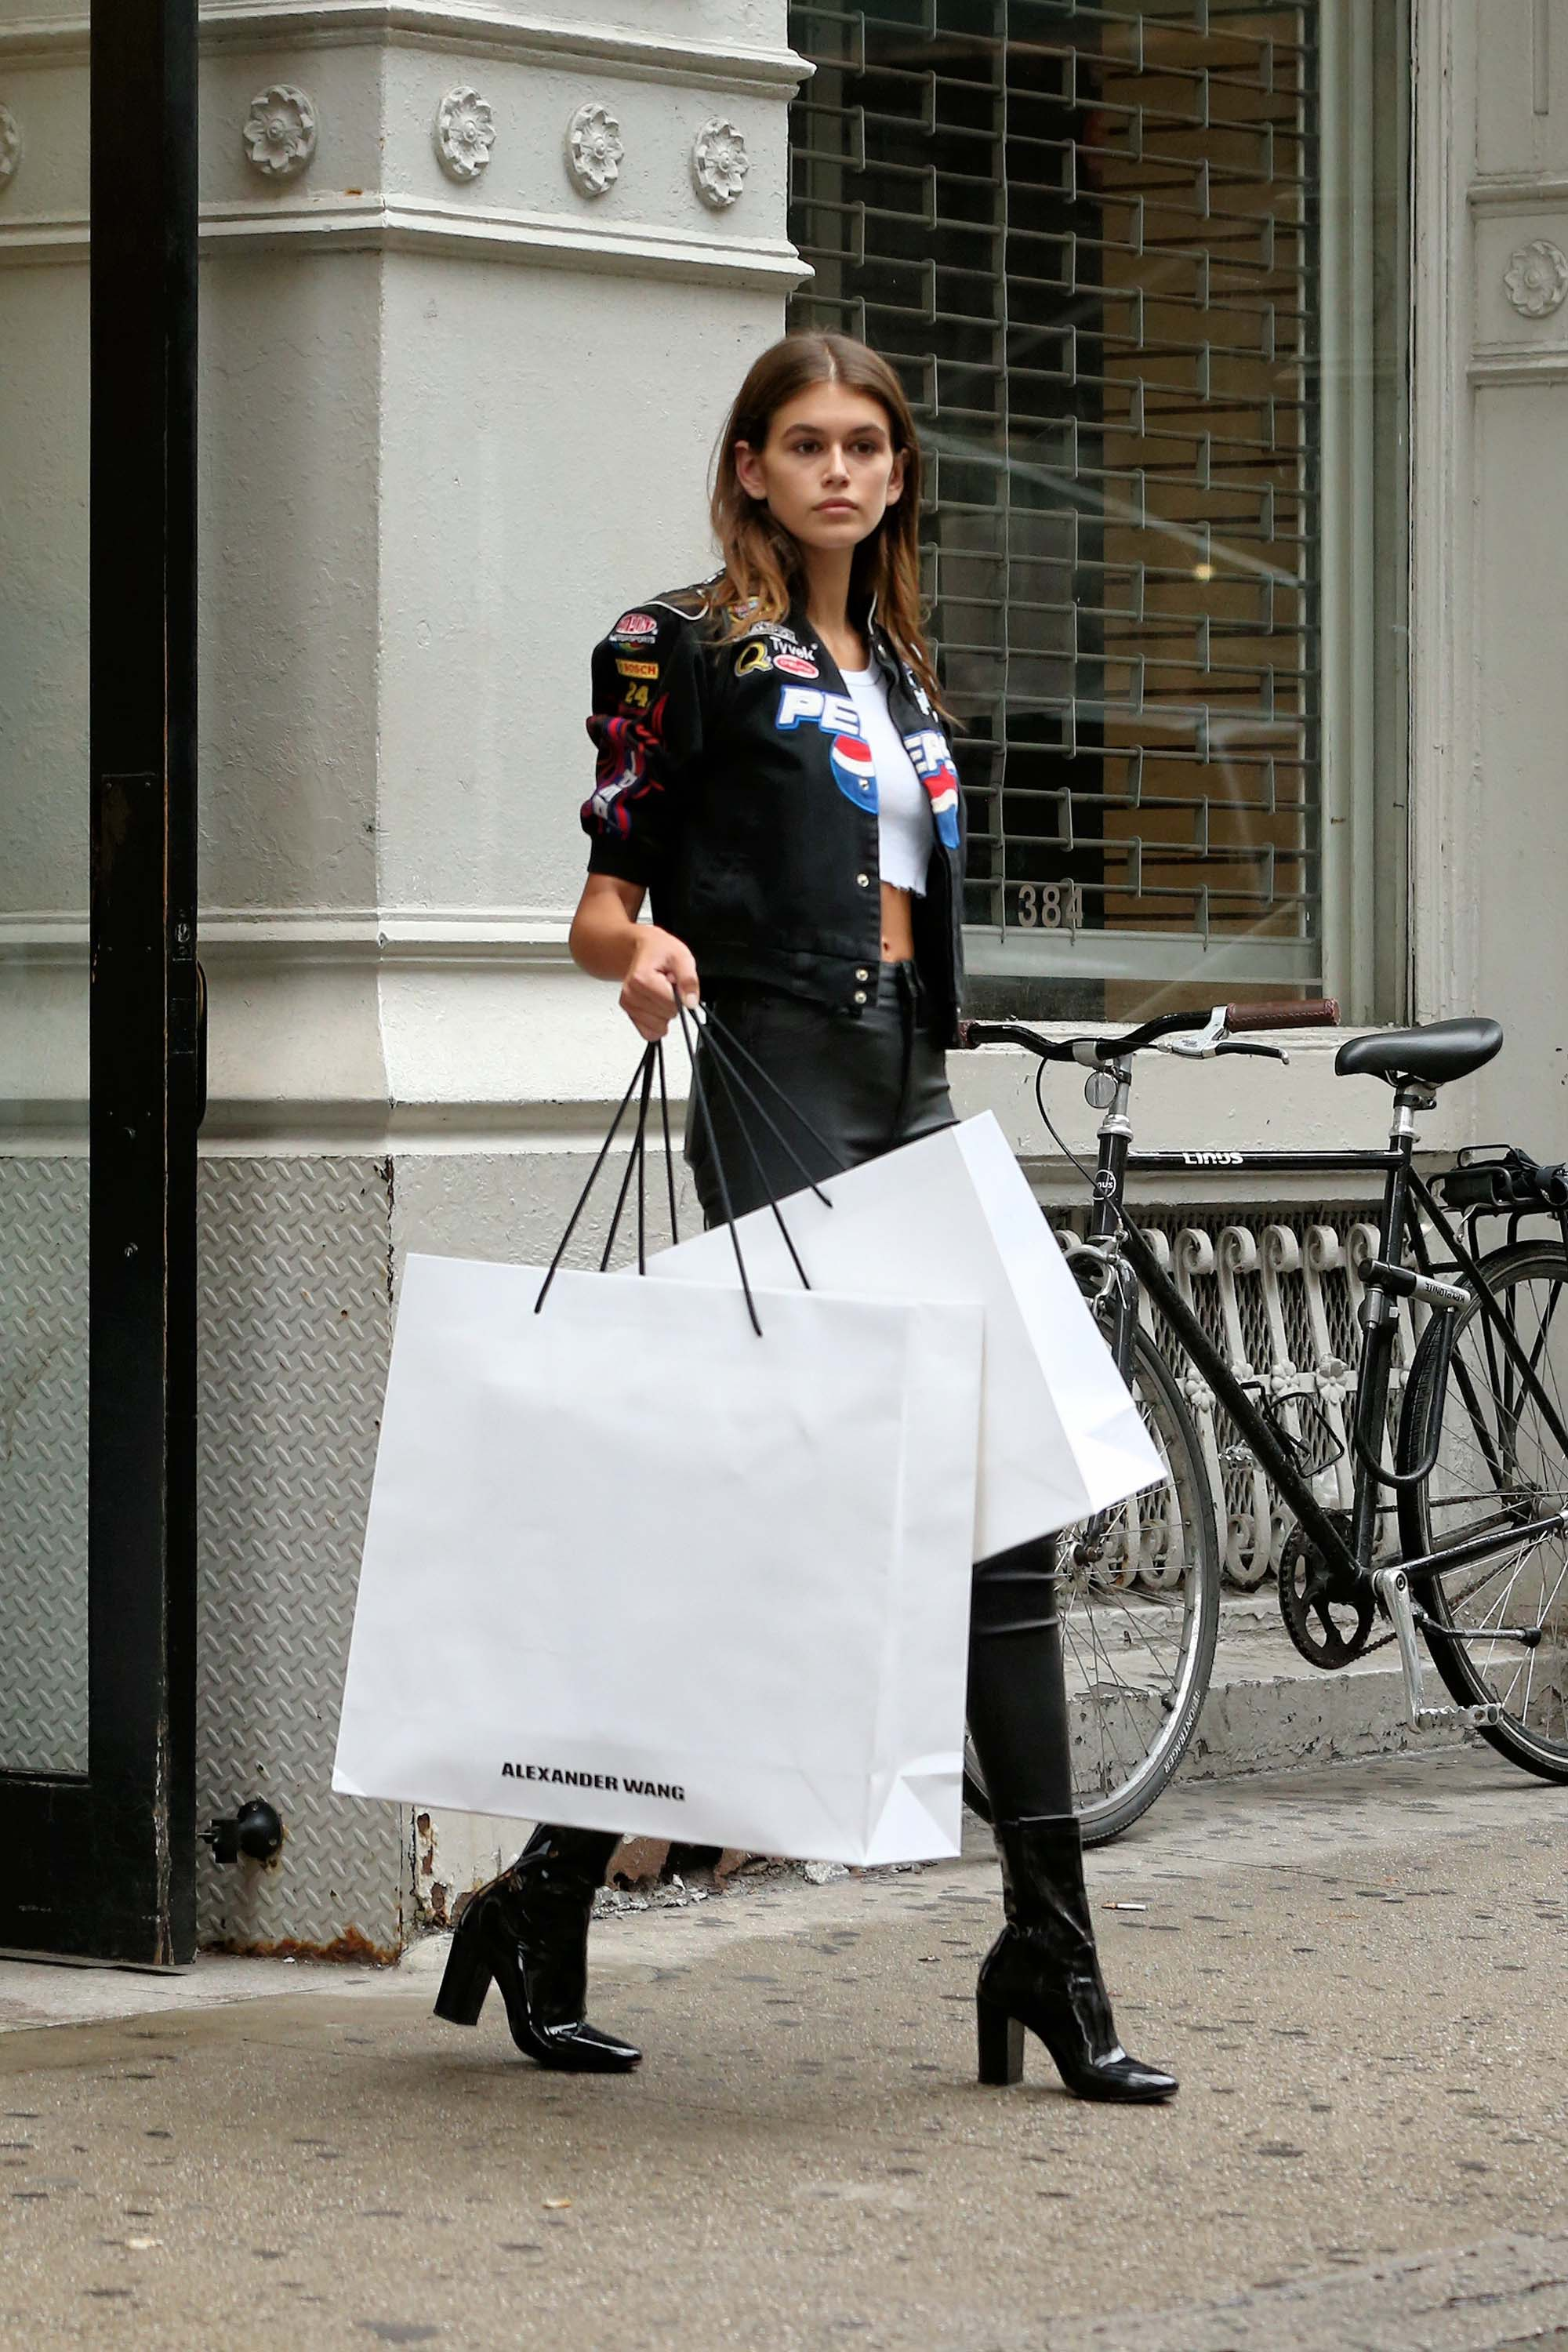 Kaia Gerber seen at the Alexander Wang fitting rooms